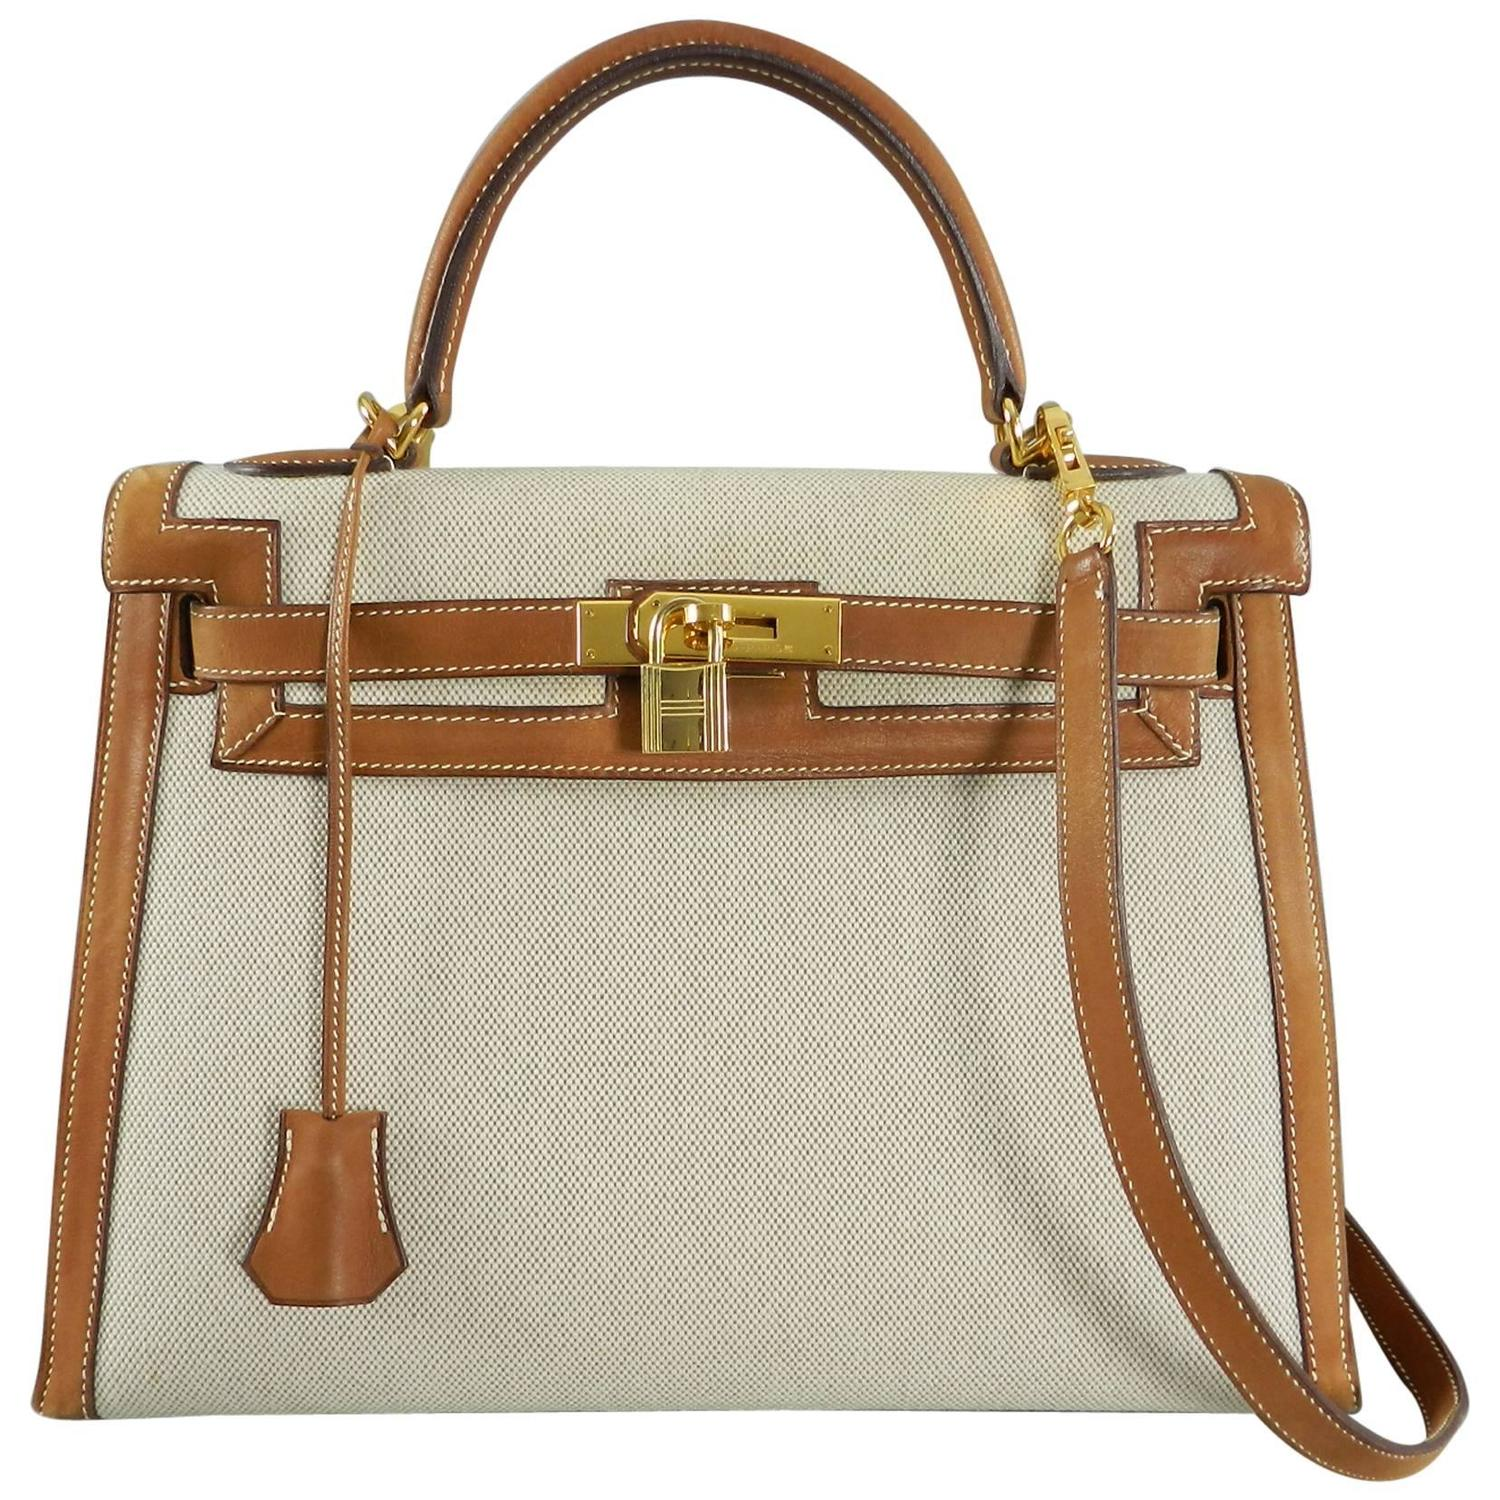 Hermes 30cm Natural Barenia and Toile Birkin Bag